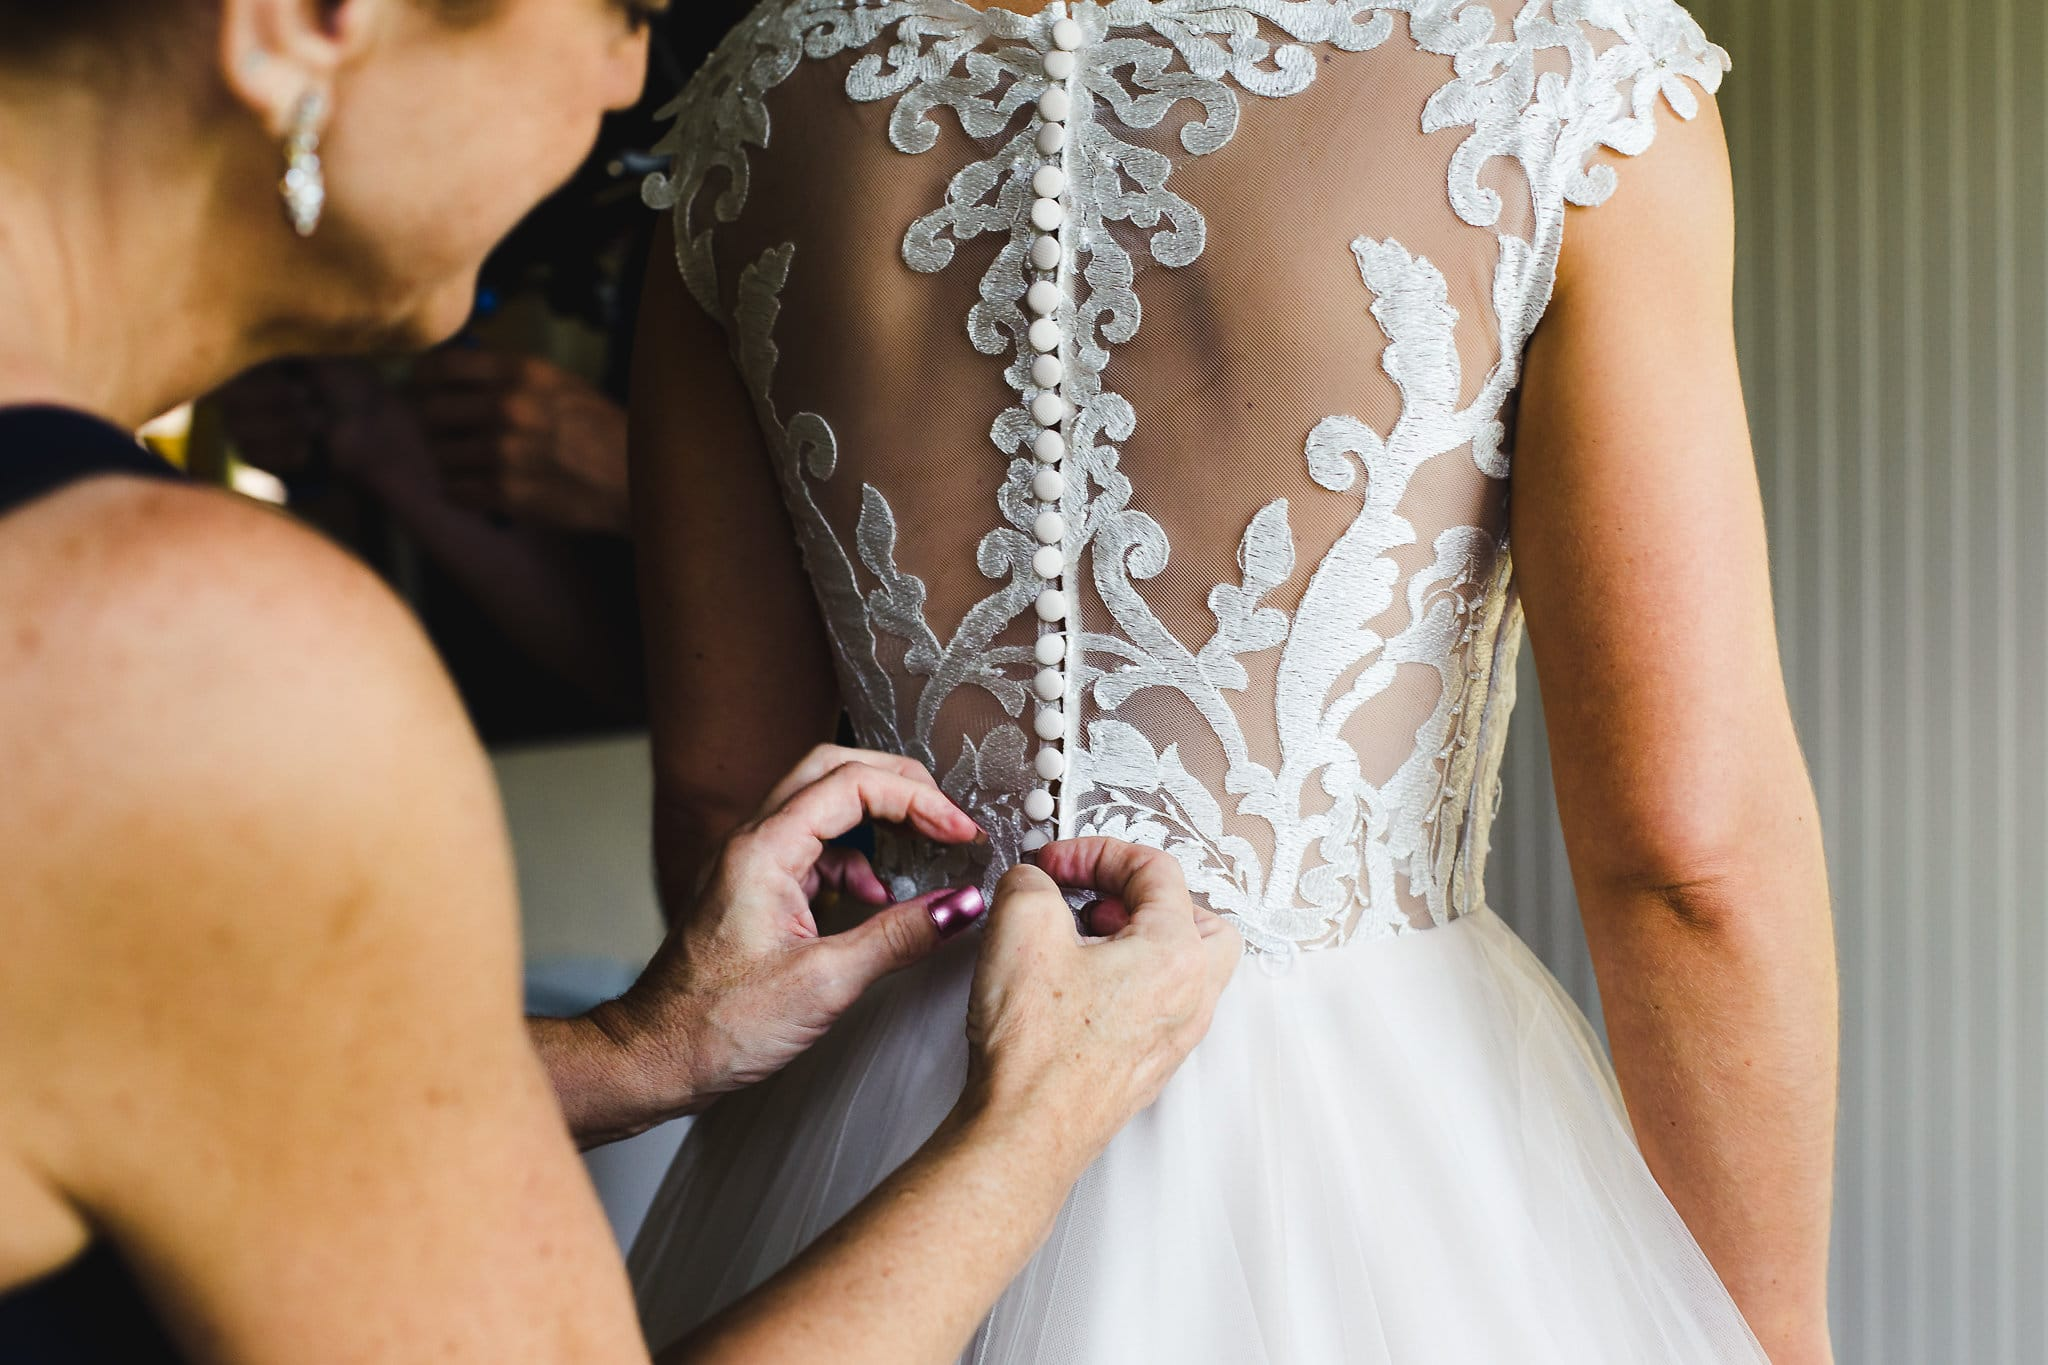 Maggie Sottero's Guide To Wedding Dress Budget Breakdown - Find the wedding dress of your dreams within your price range! Budget weddings don't need to skimp on style with our Rebecca Ingram gowns.